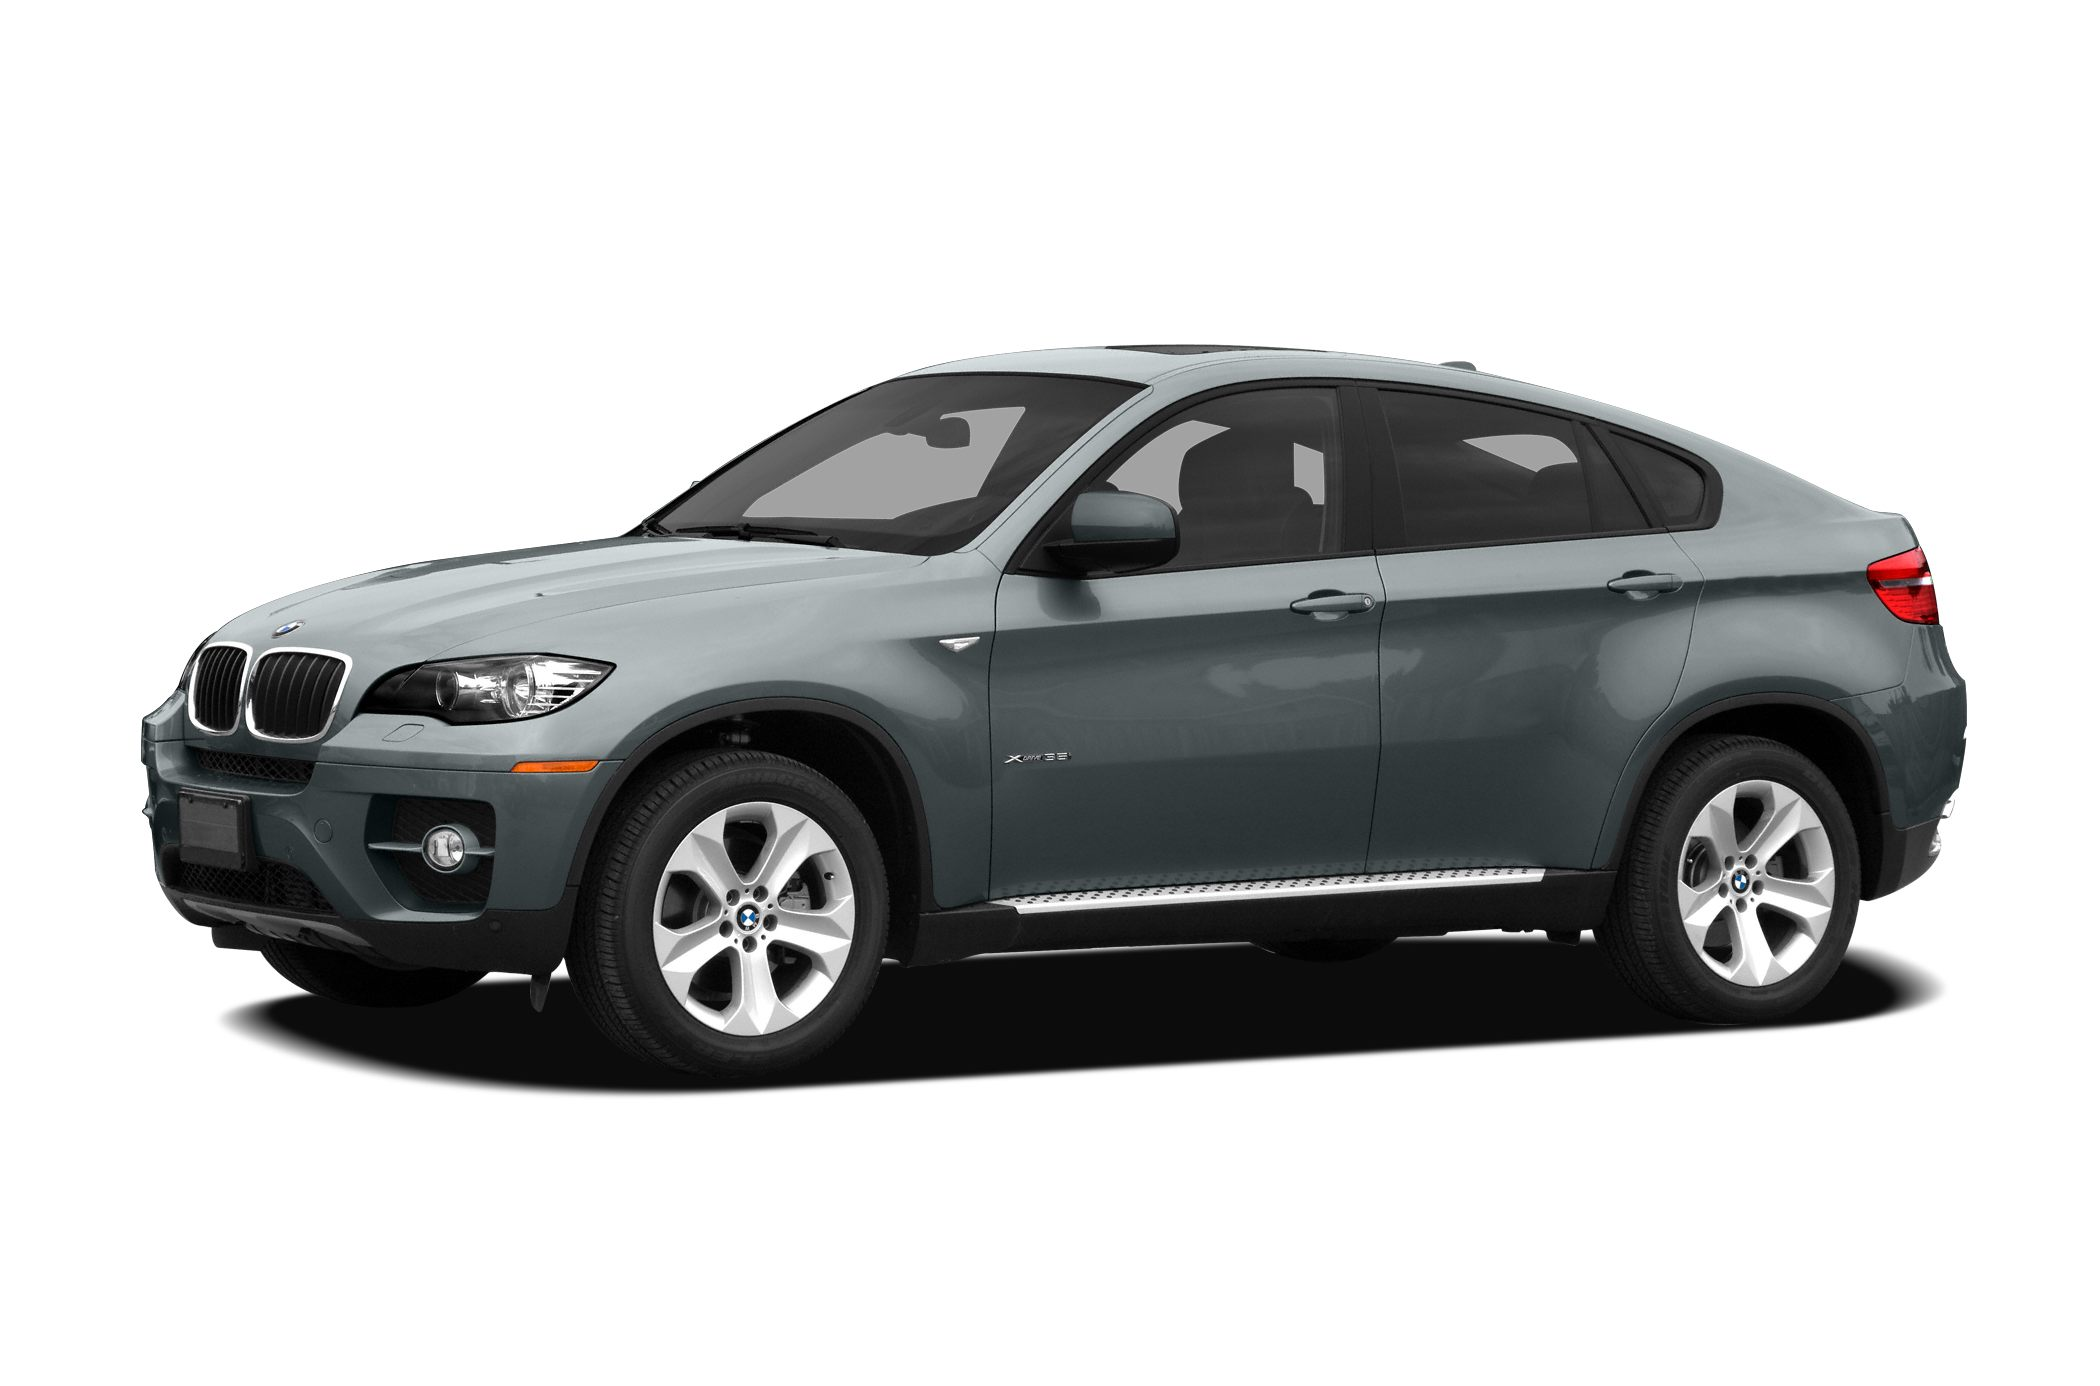 2012 BMW X6 XDrive35i SUV for sale in Linden for $36,990 with 62,454 miles.